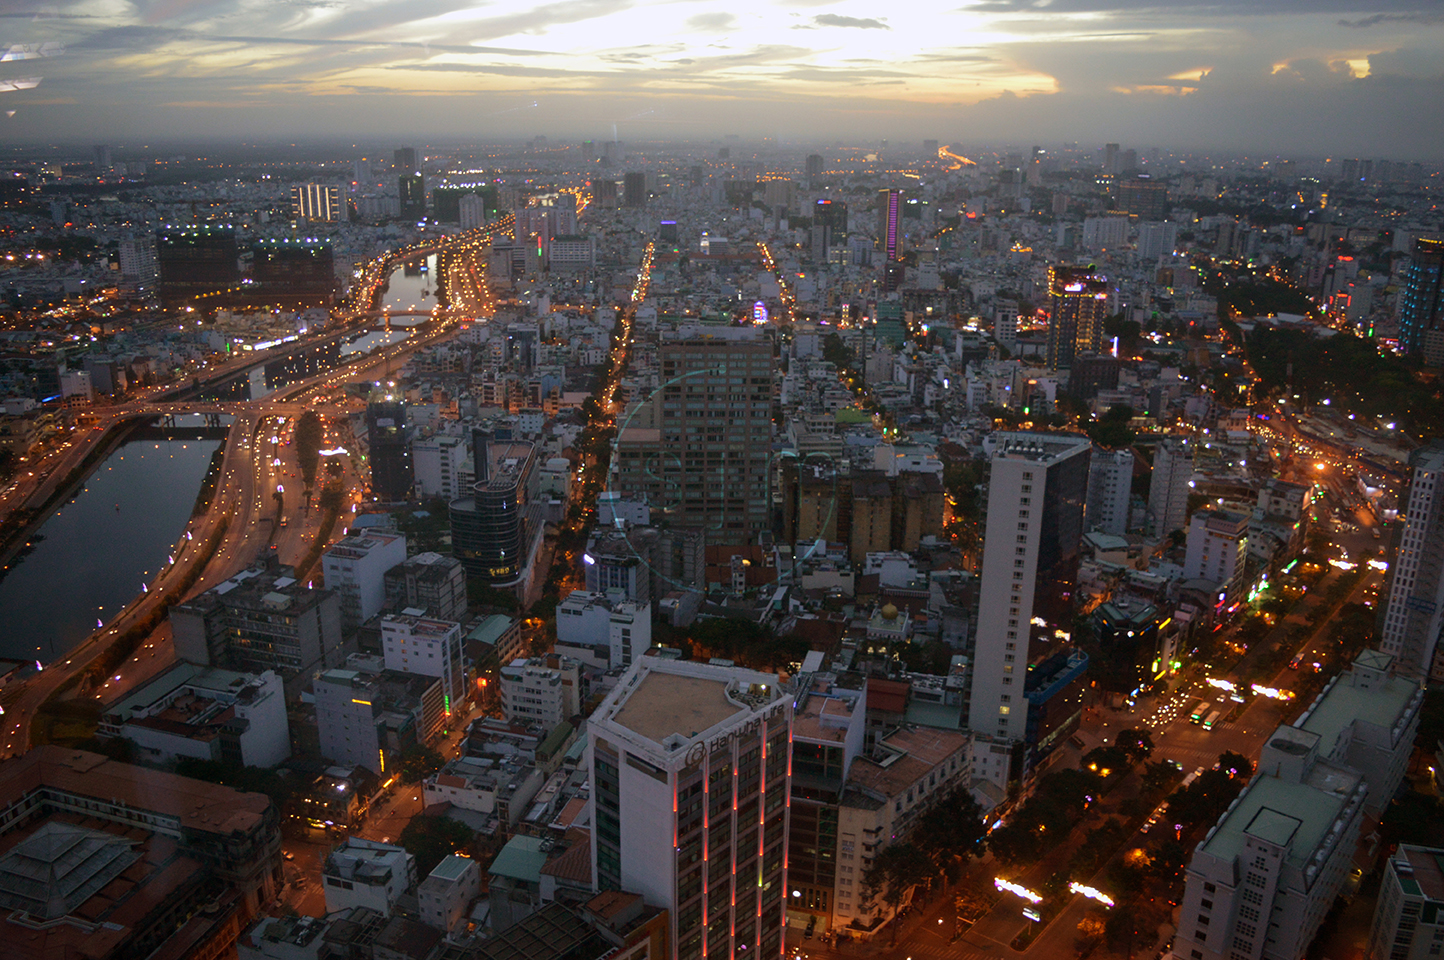 View of Ho Chi Minh City from the Bitexco Financial Tower